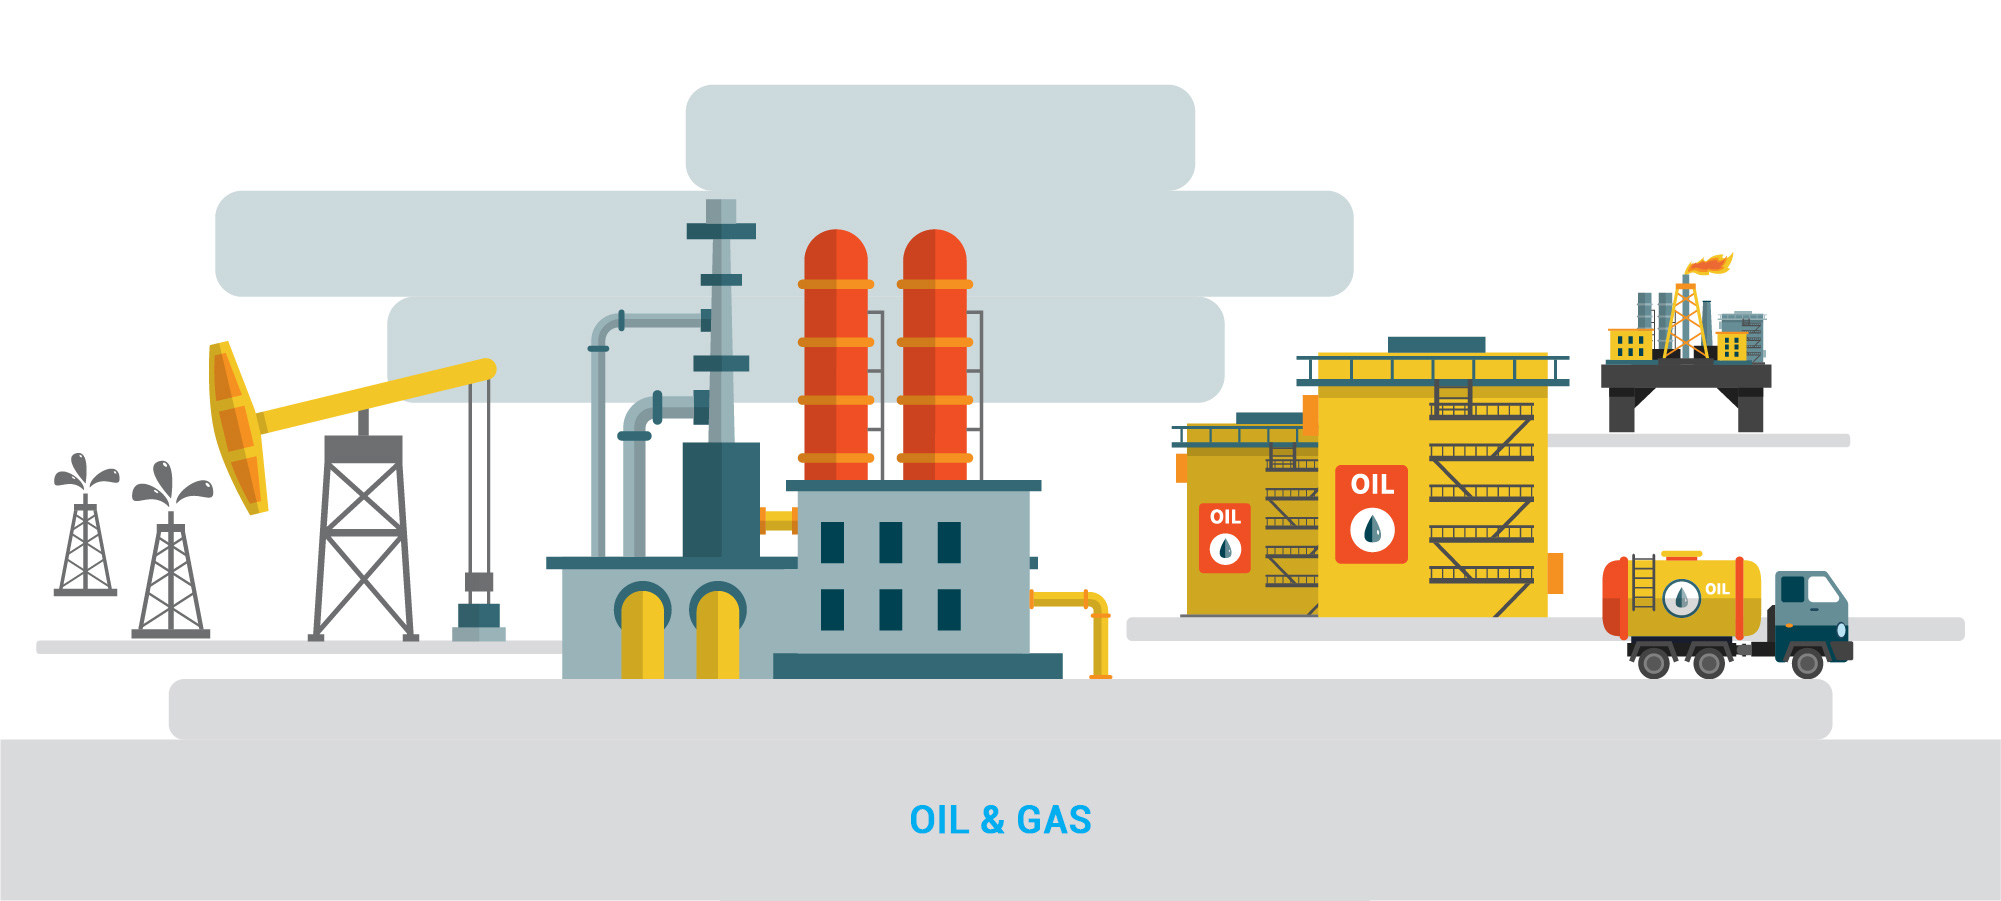 oil-and-gas-2